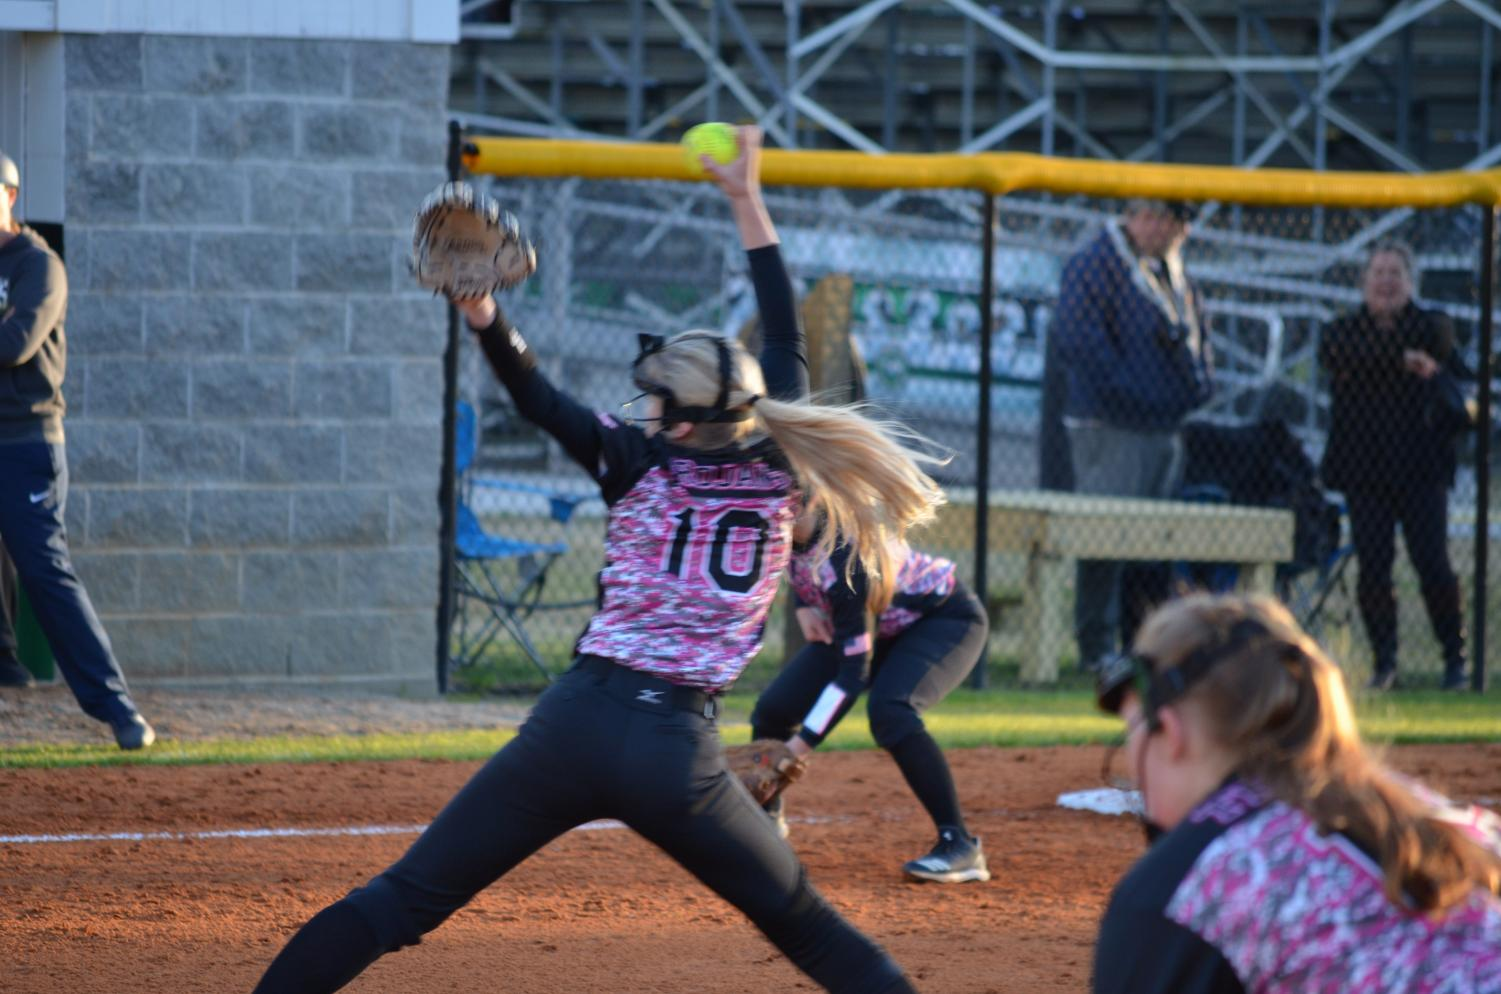 Morgan Beeler winding up for another great pitch